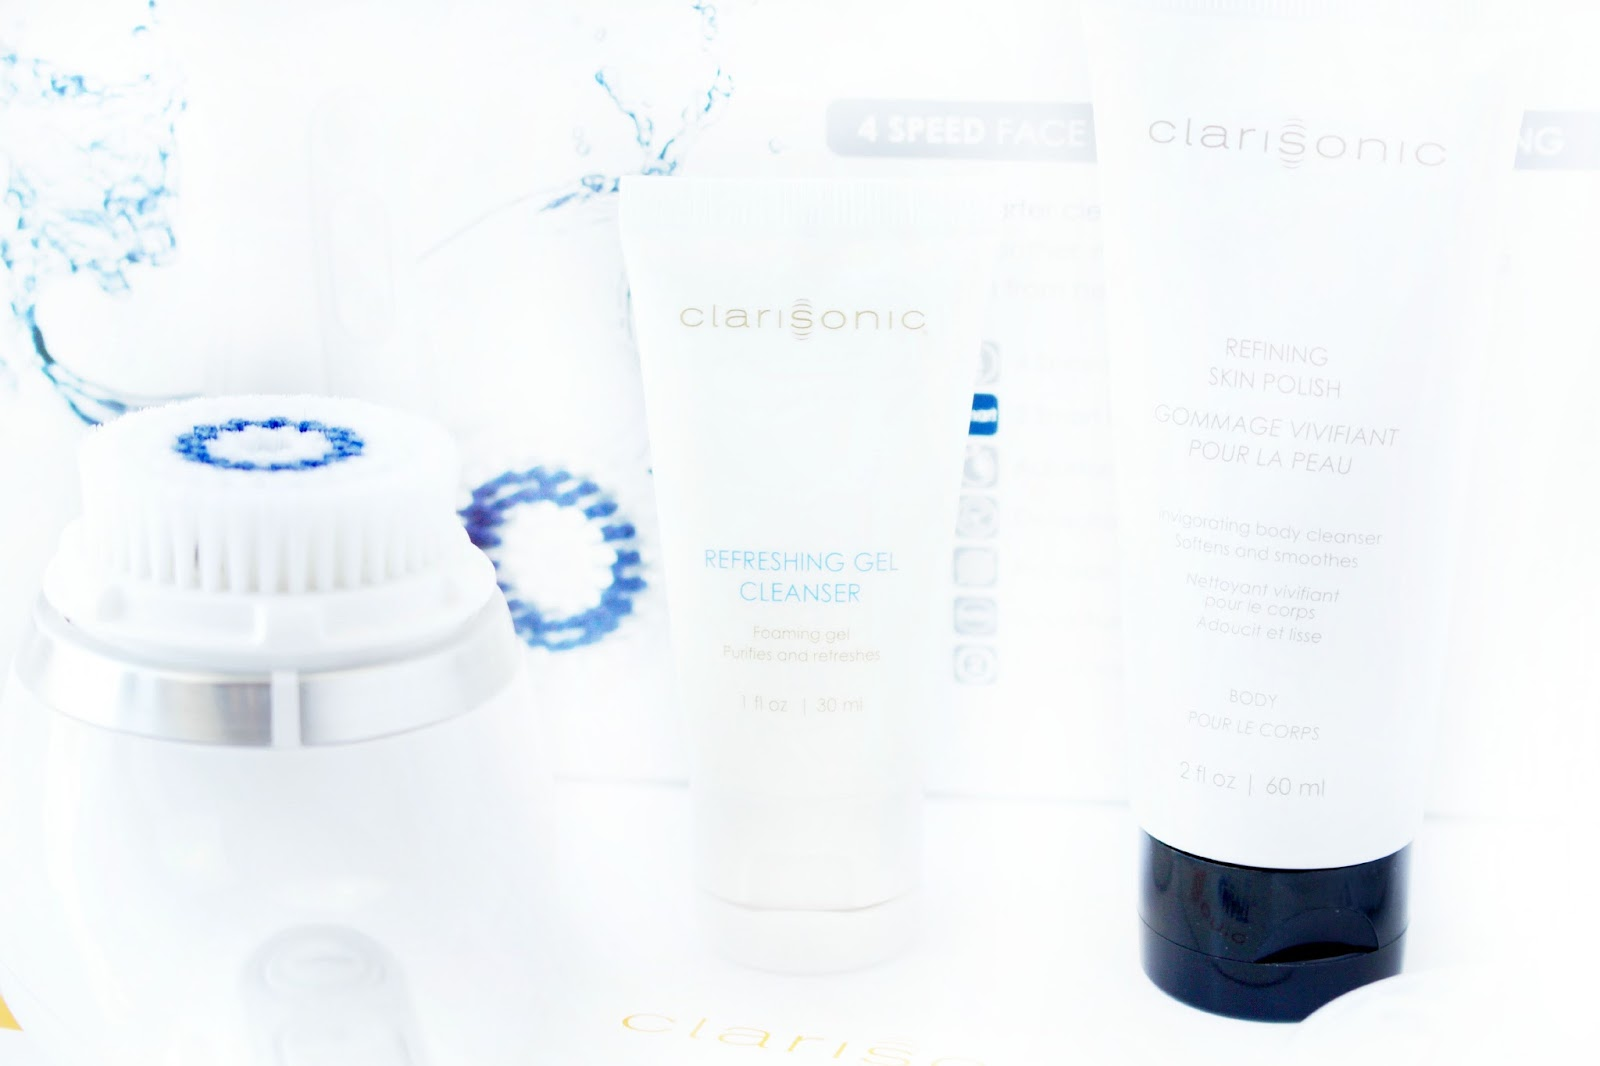 Clarisonic SMART Profile Cleansing Brush Review